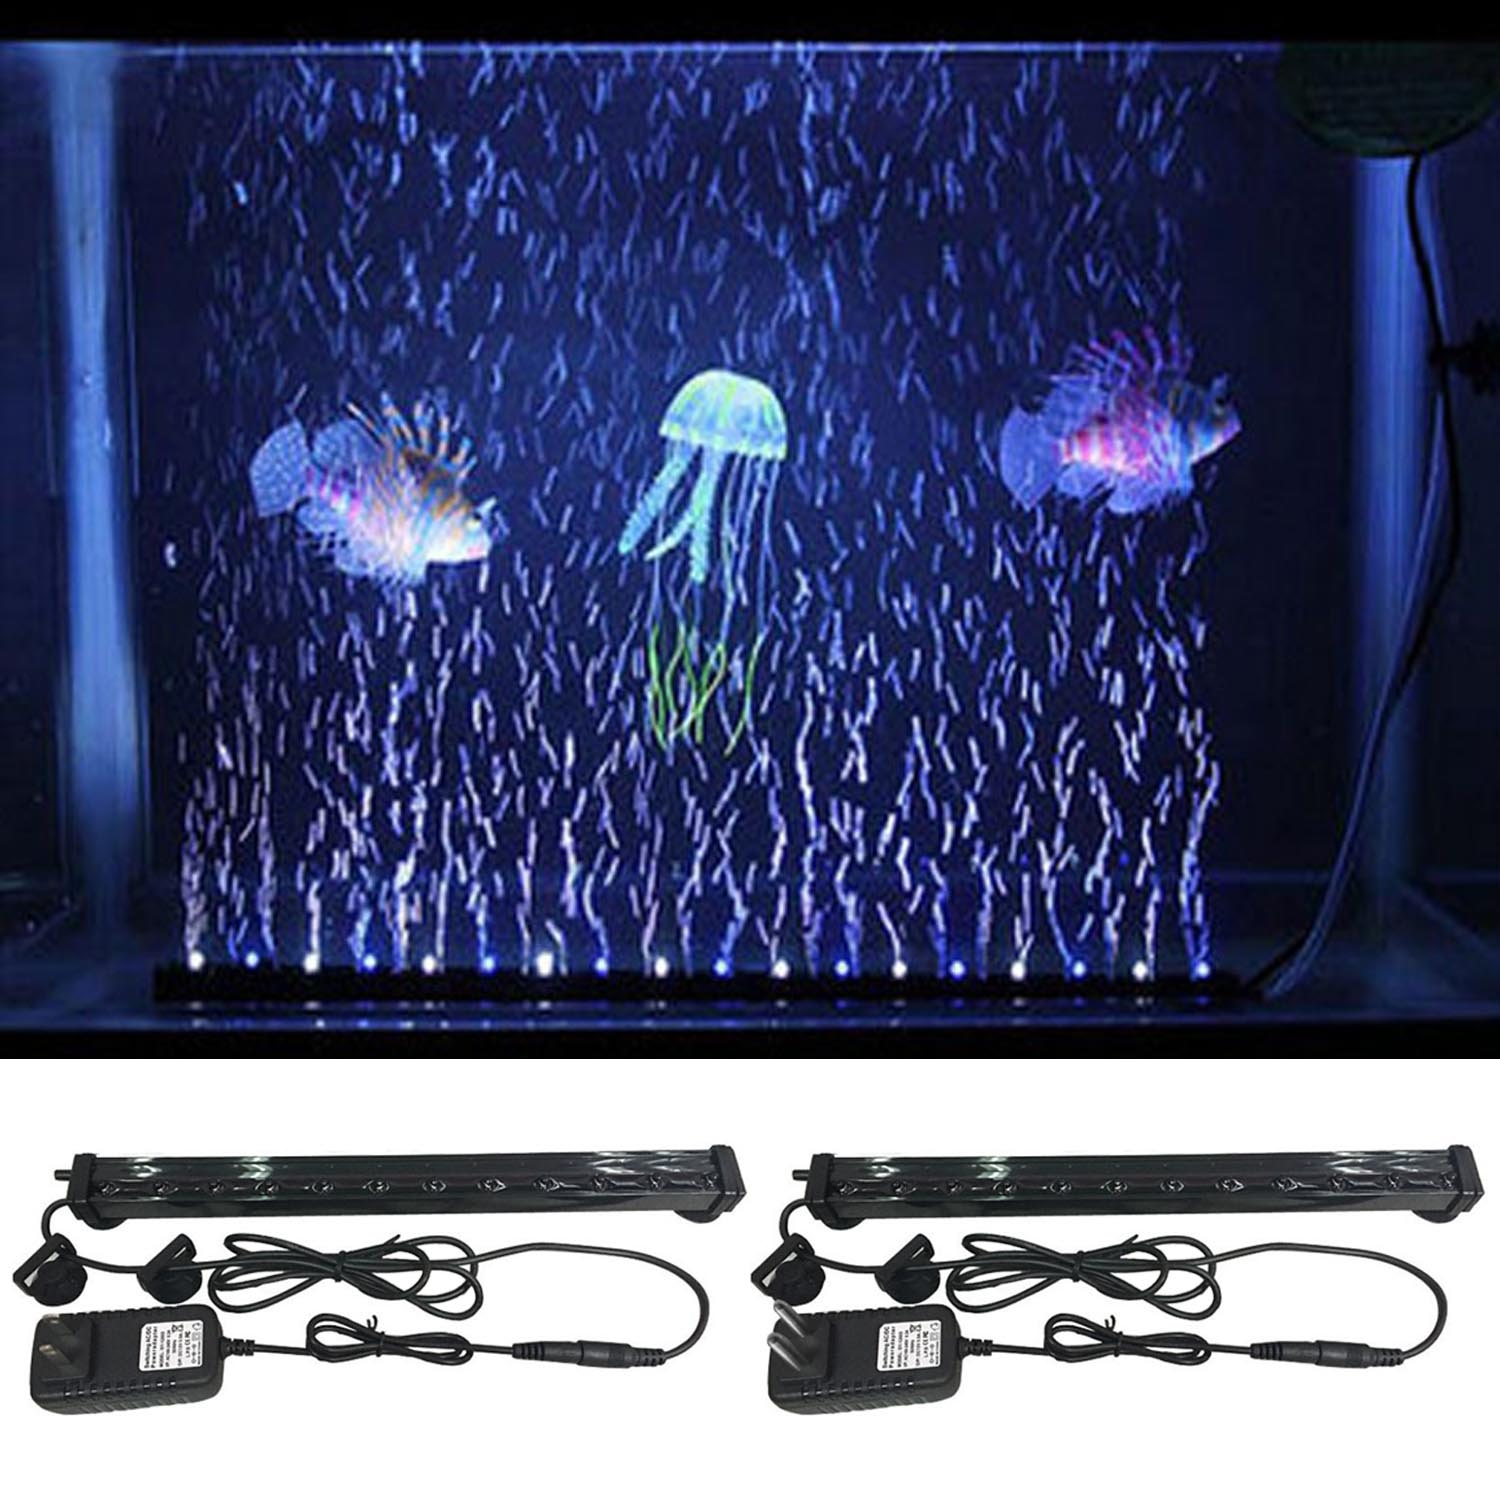 Behogar Colorful Changing Underwater Submersible LED Light Aquarium Fish Tank Air Bubble Automatically 17/32/47CM Length